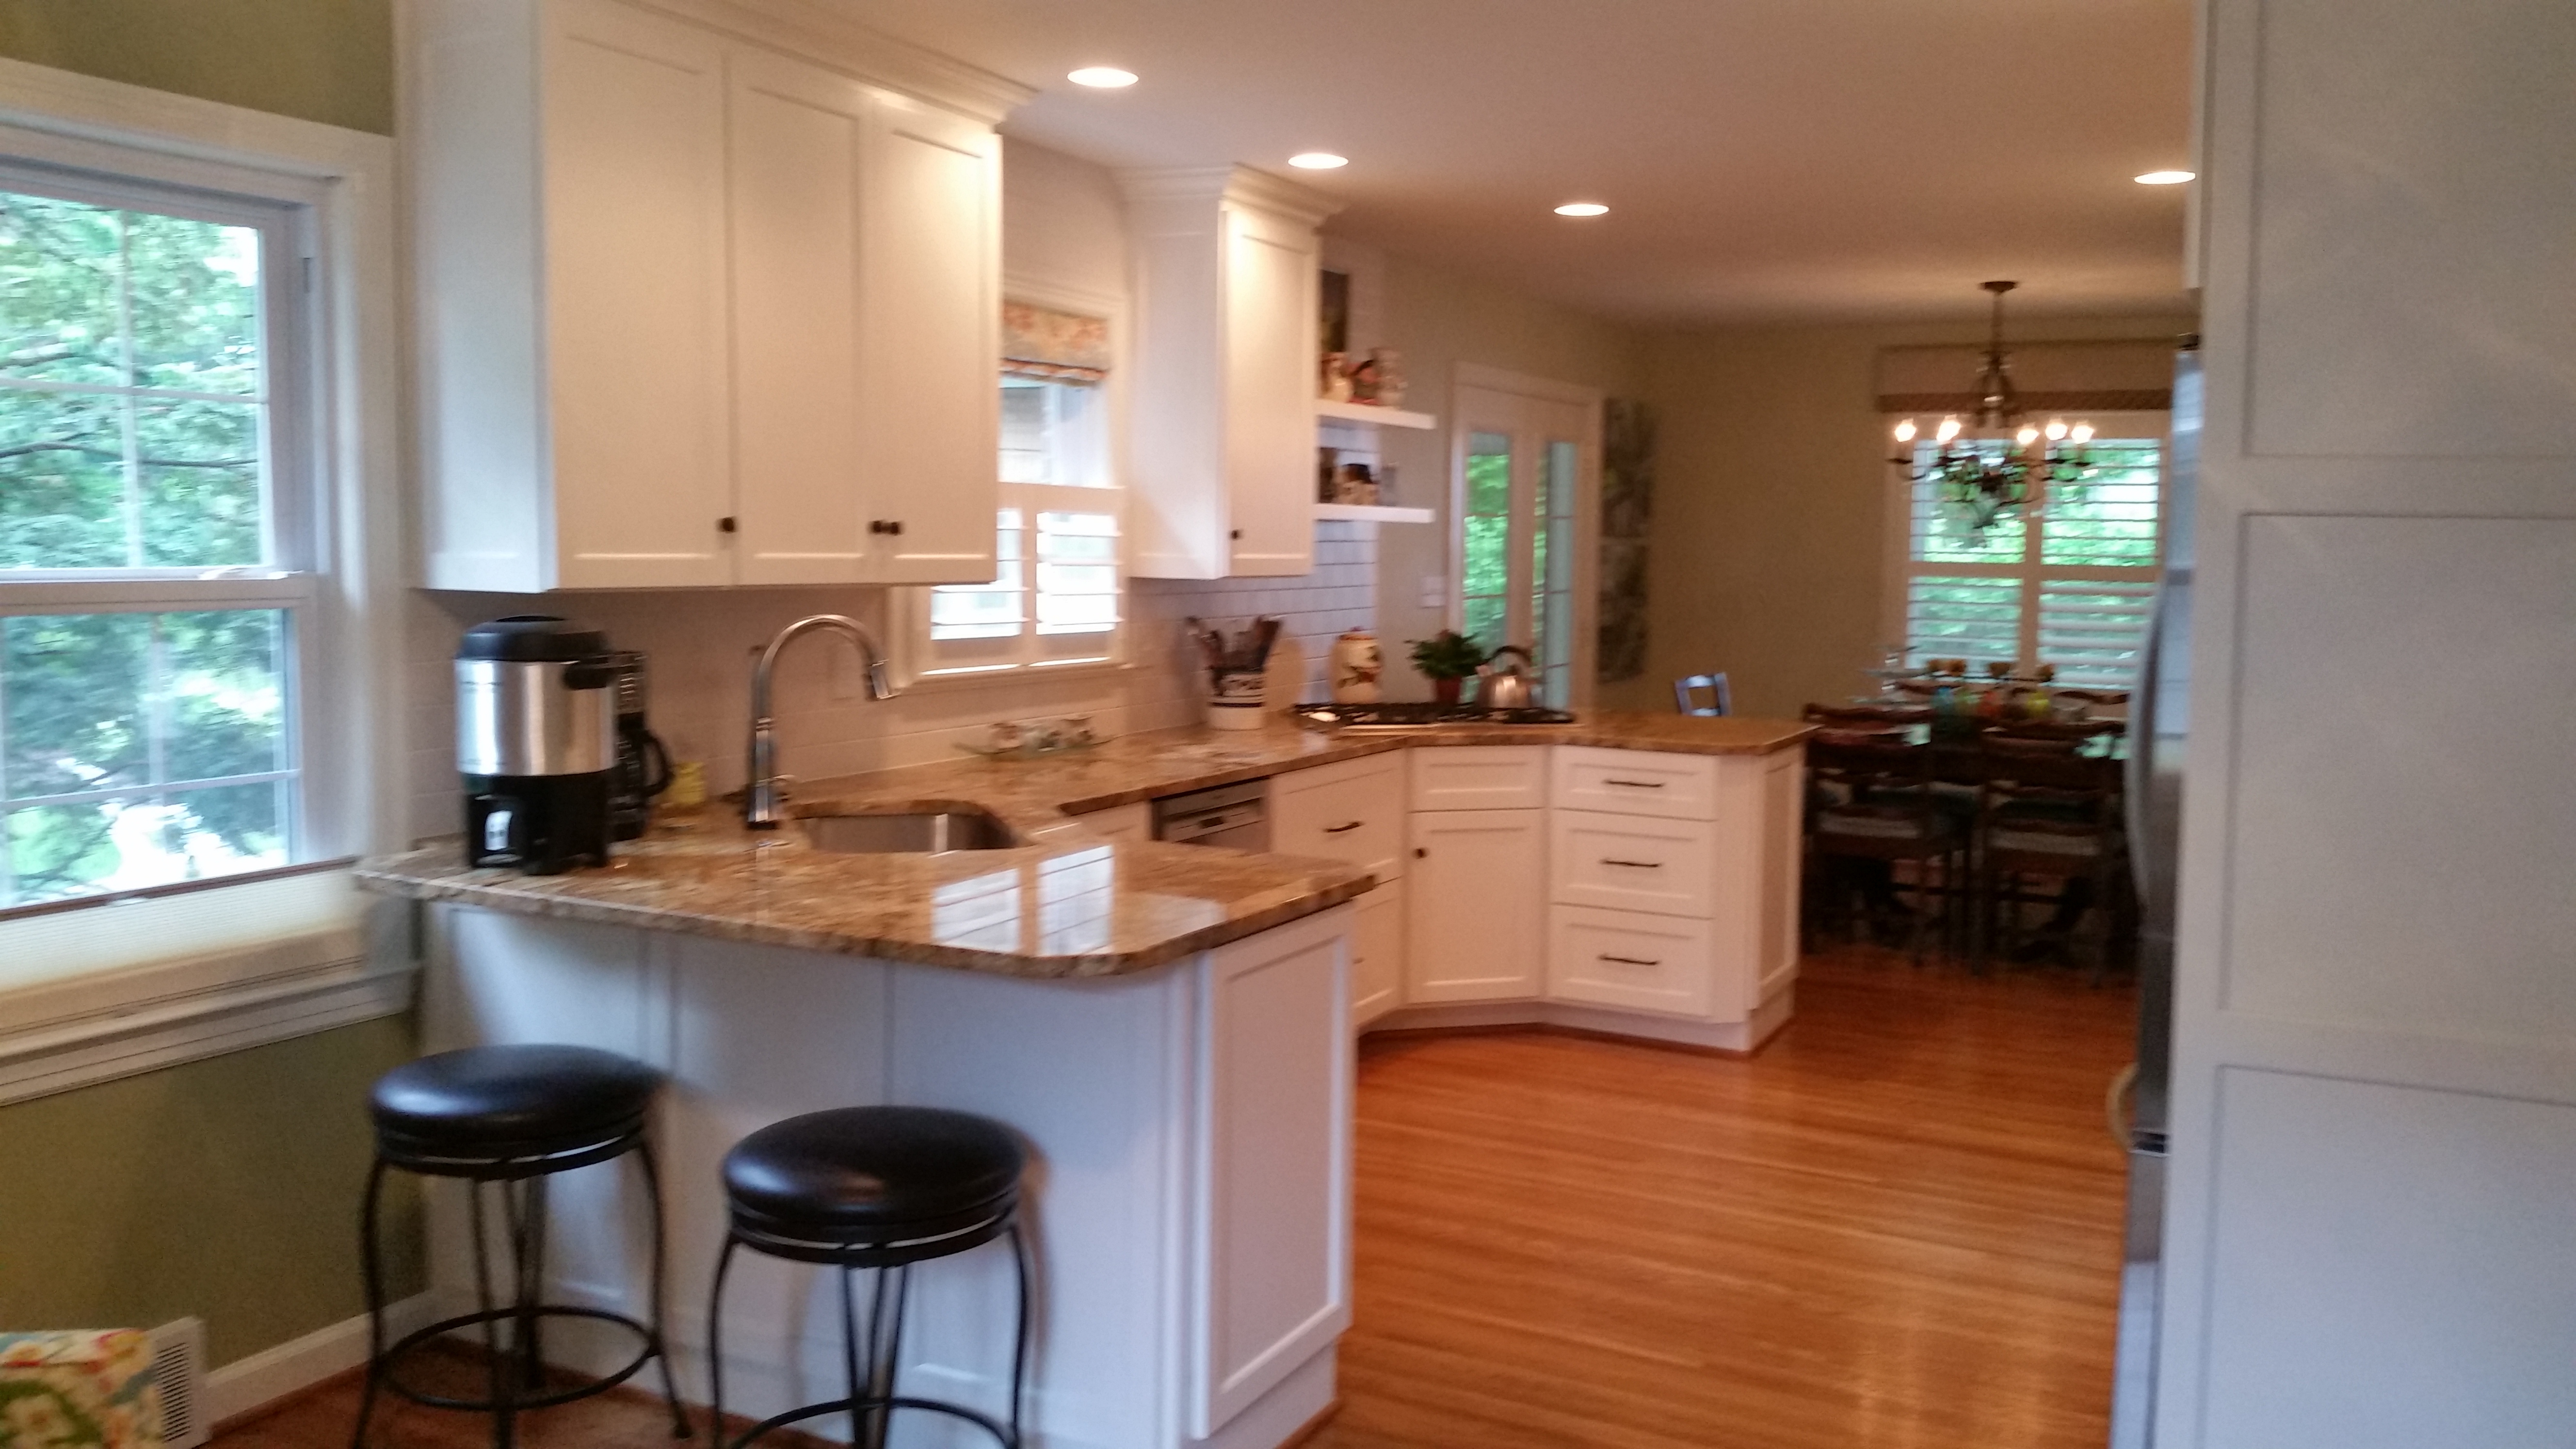 Gallery kitchen cabinetry classic kitchens of for Kitchen cabinets louisville ky